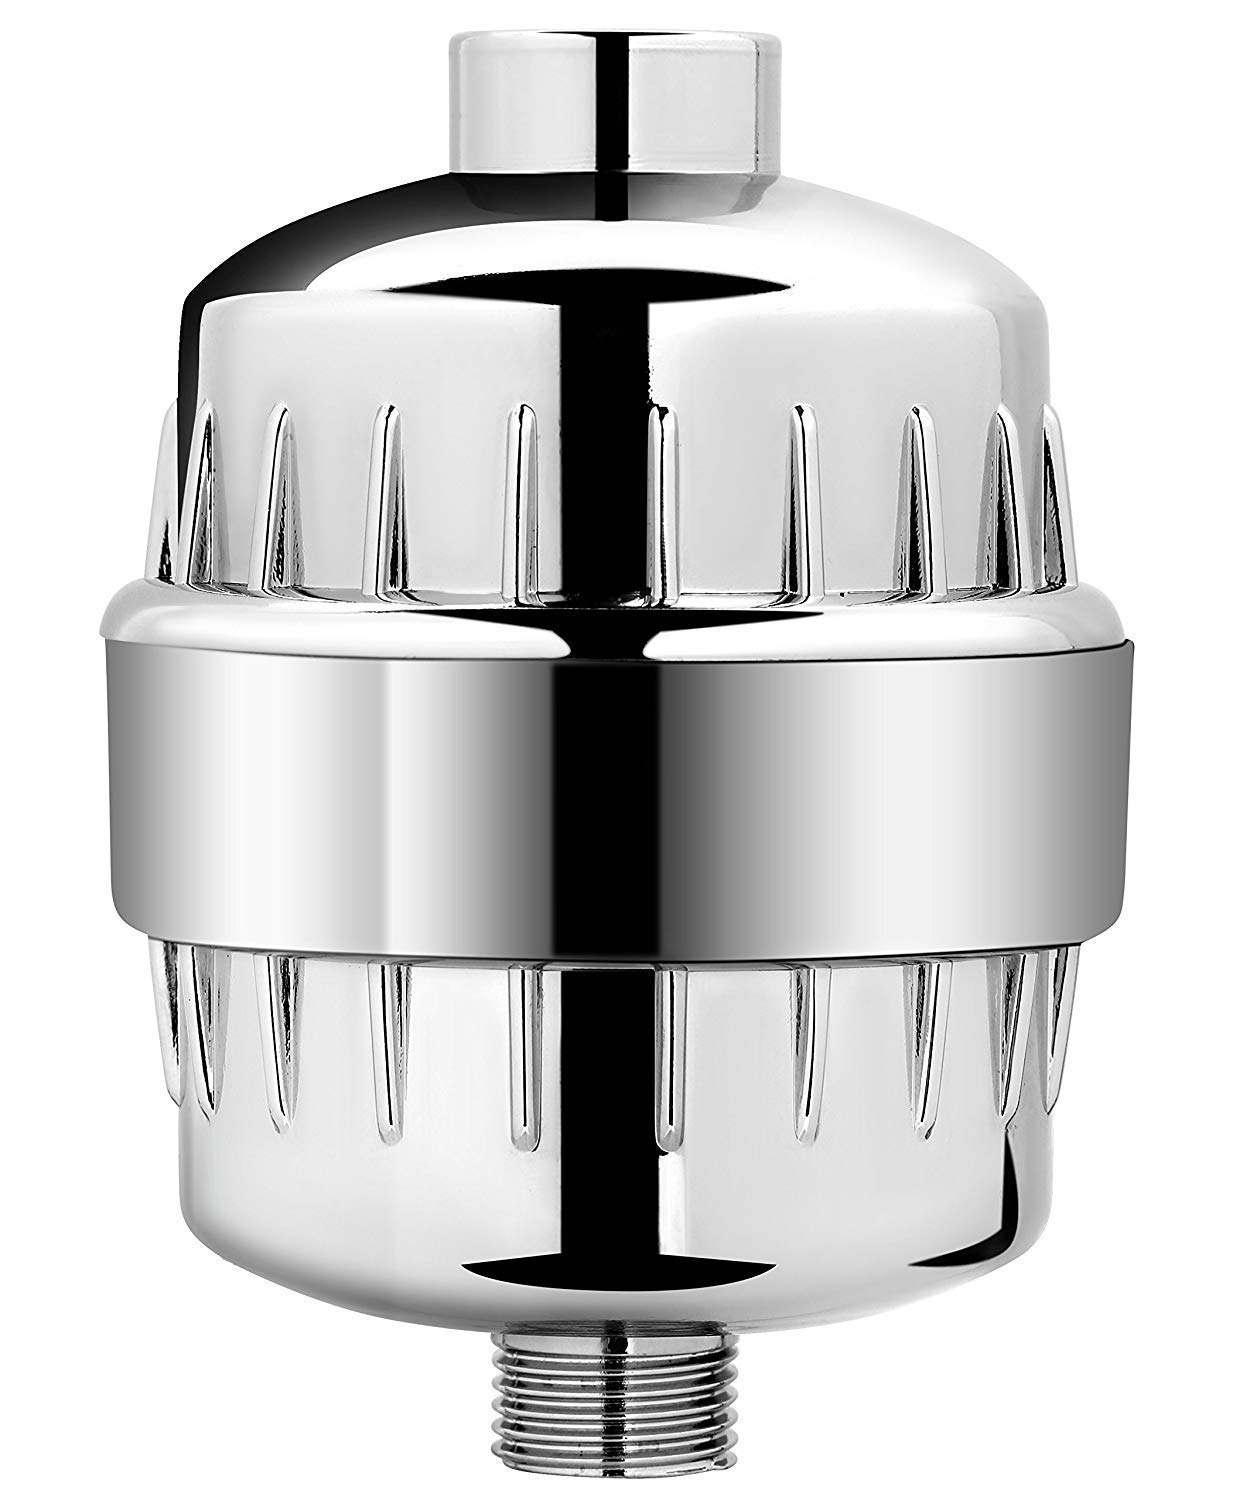 AquaBliss Multi-Stage Shower Filter w/ Replaceable Cartridge – Transform Itching, Eczema & Acne into Glowing Hair, Nails and Skin Fast. Chrome SF220